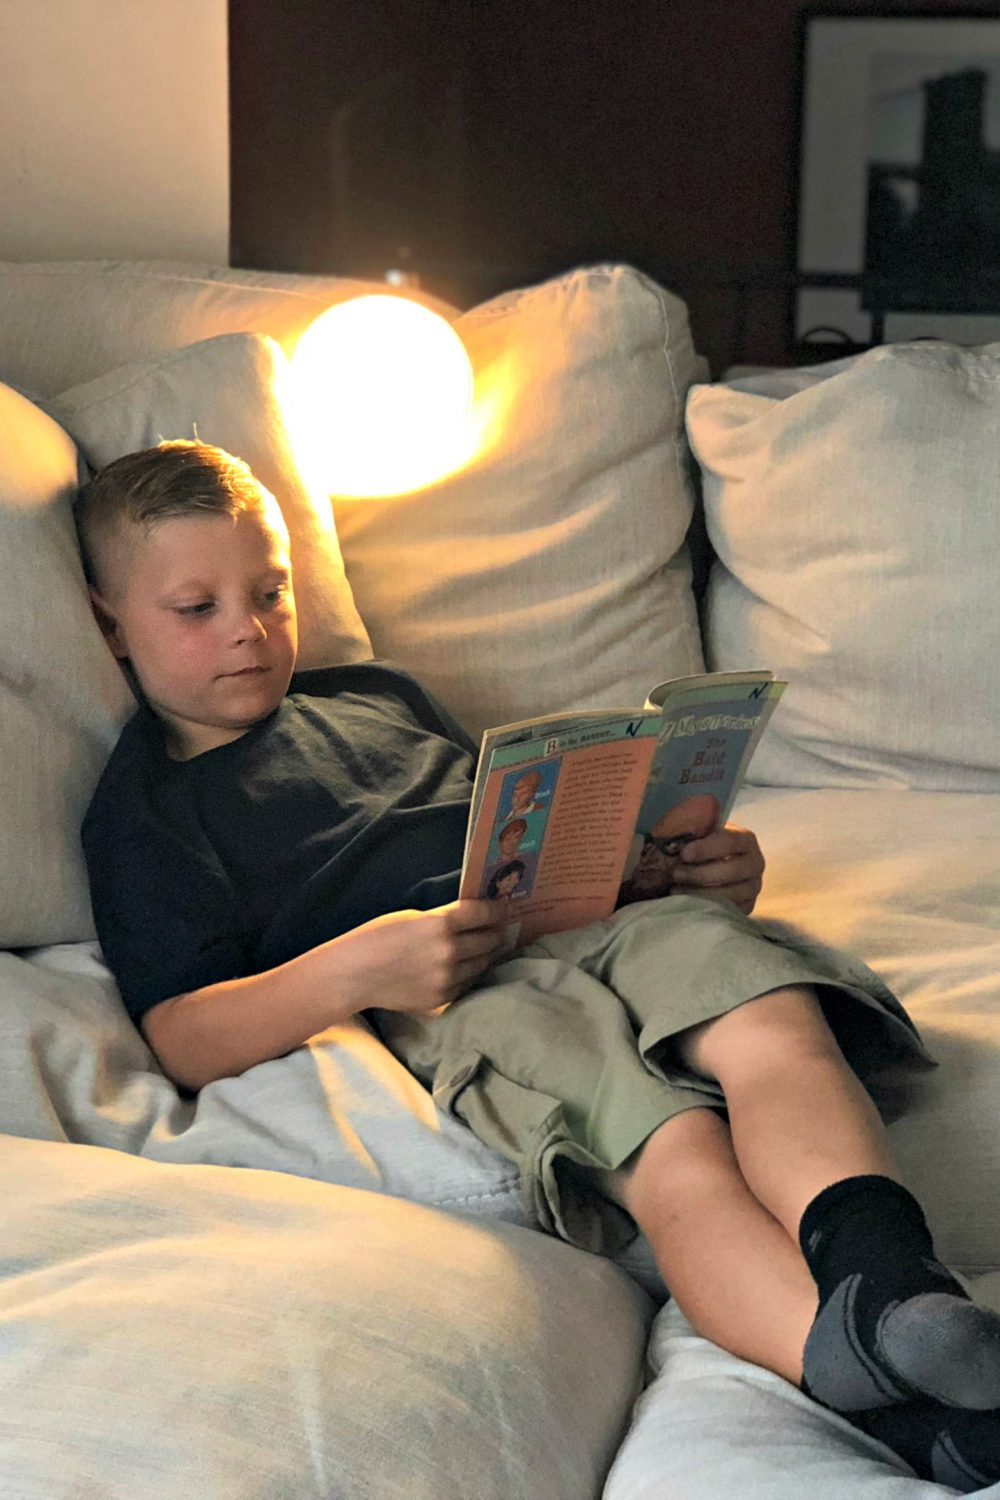 How Philips Hue Smart Lighting Helped Our Family Get Into Back to School Mode.